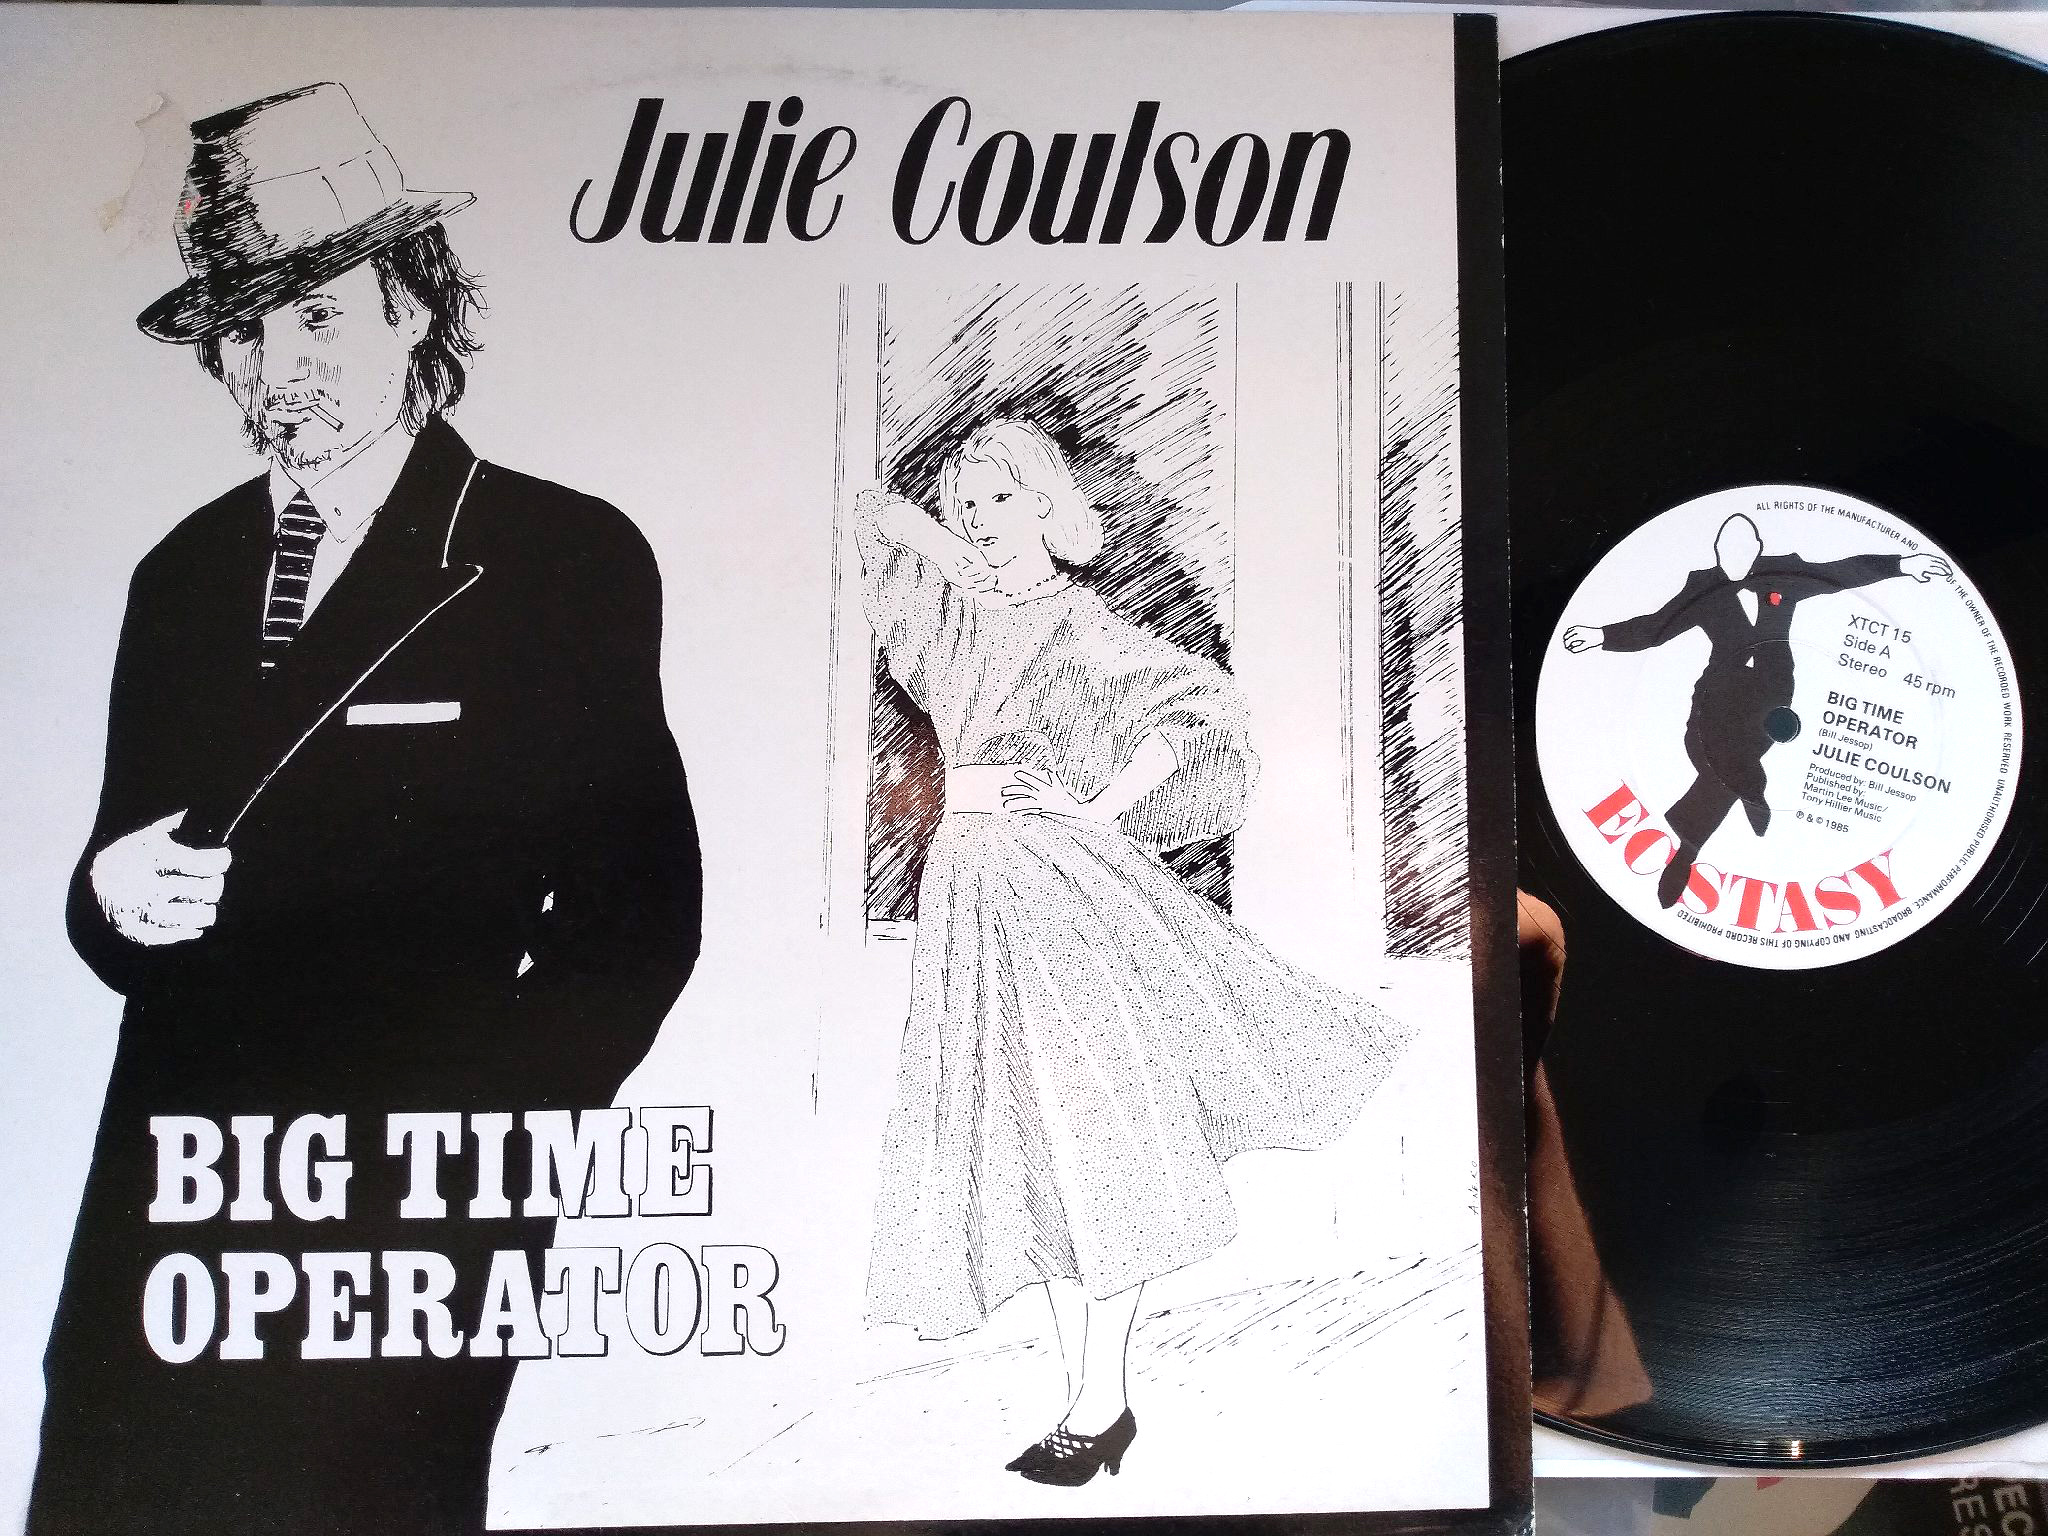 Julie Coulson - Big Time Operator